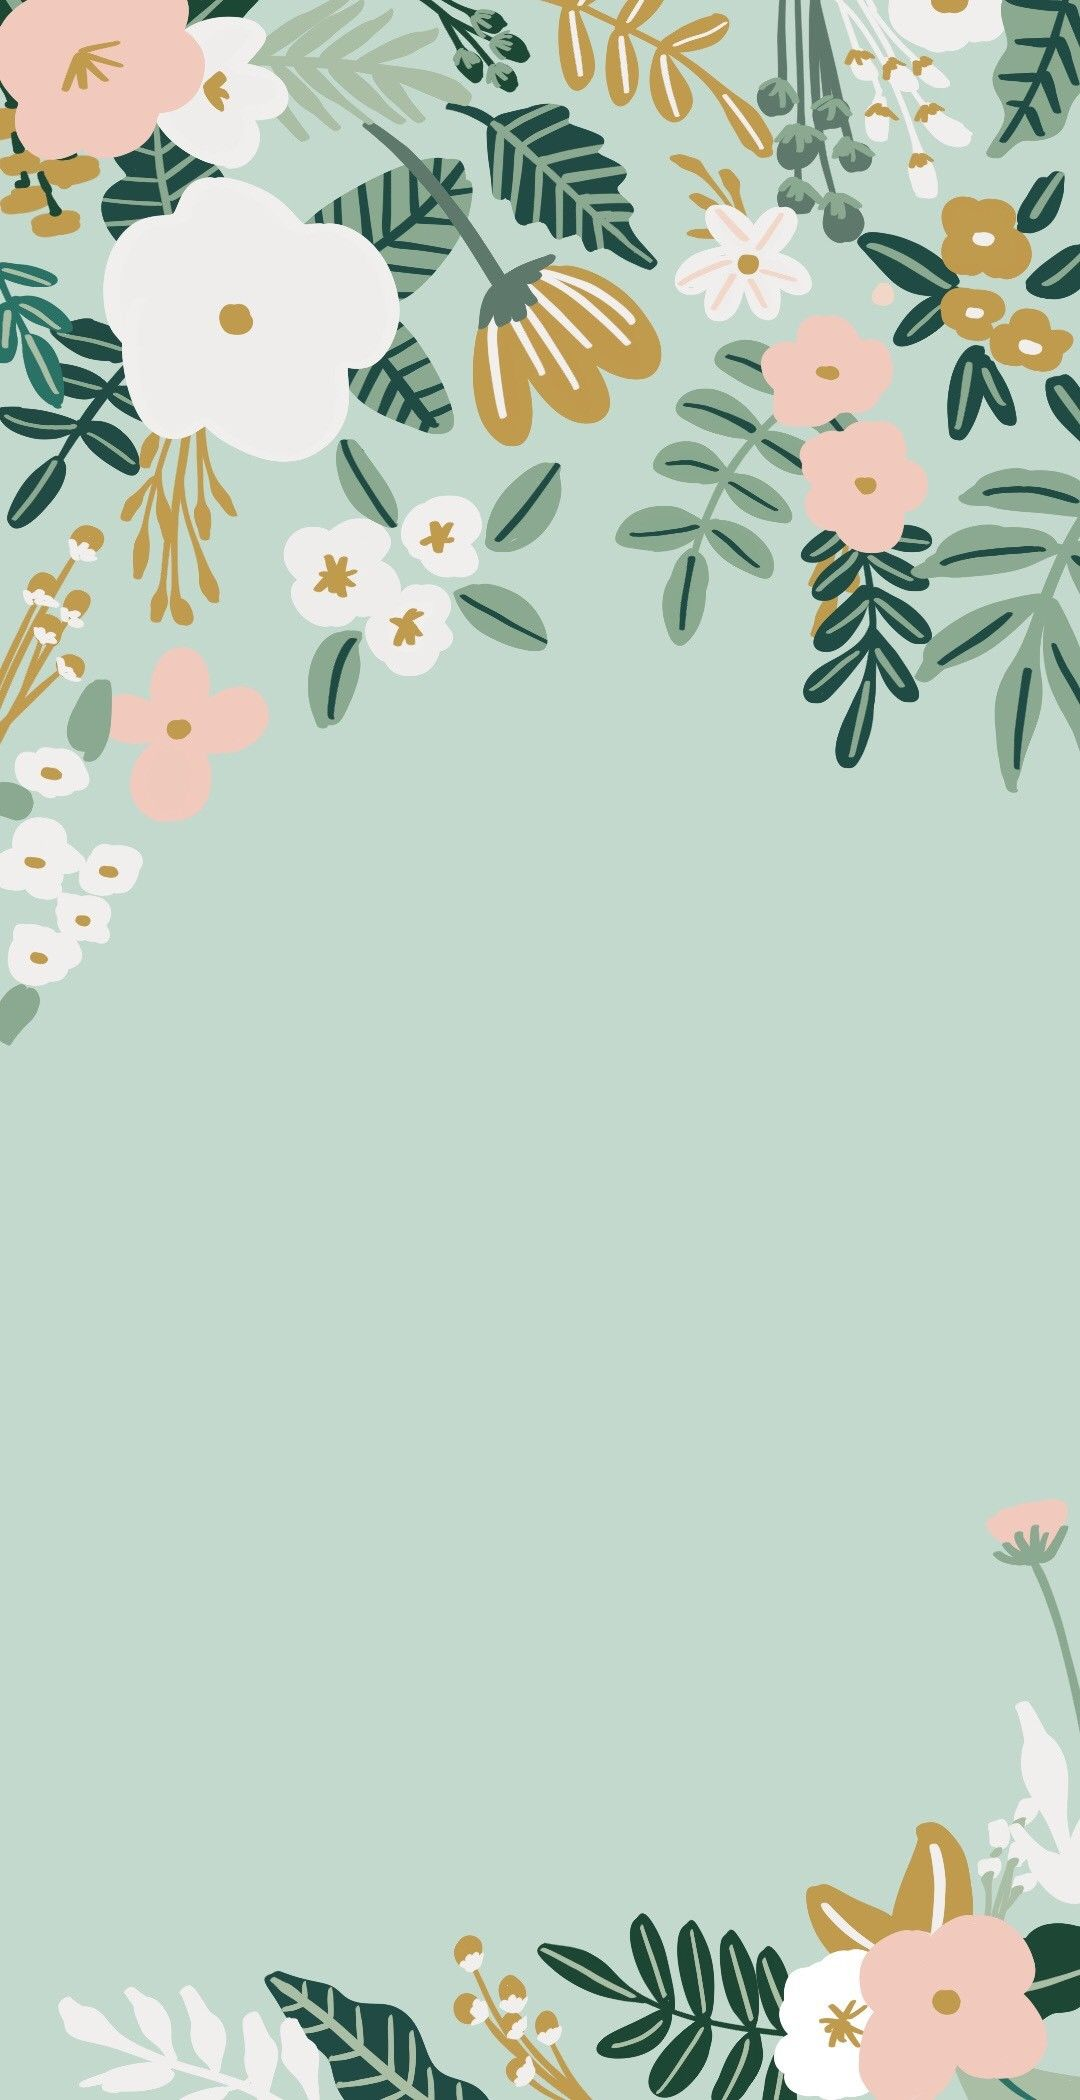 Free Iphone Floral Wallpaper In 2021 Floral Wallpaper Iphone Pretty Wallpaper Iphone Wallpaper Iphone Cute